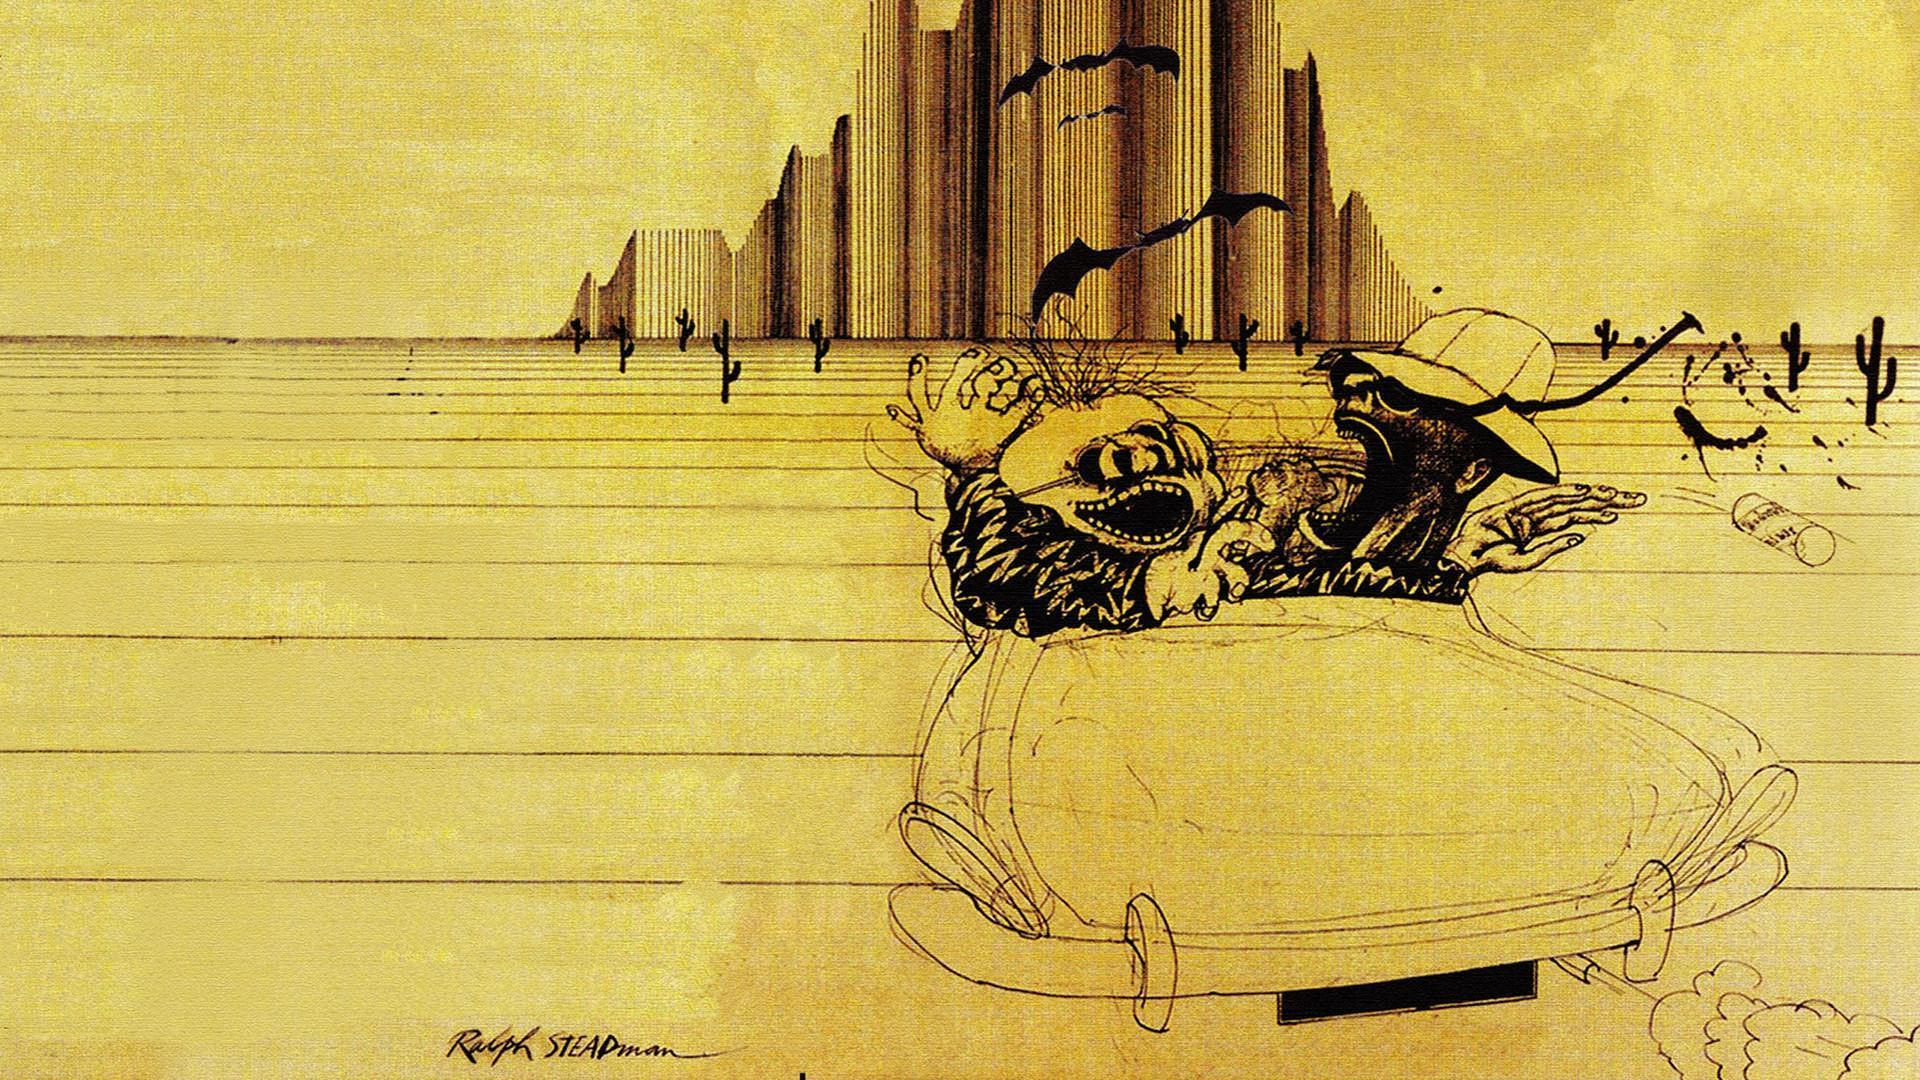 ralph-steadman-art-gallery-fear-loathing-ride-2